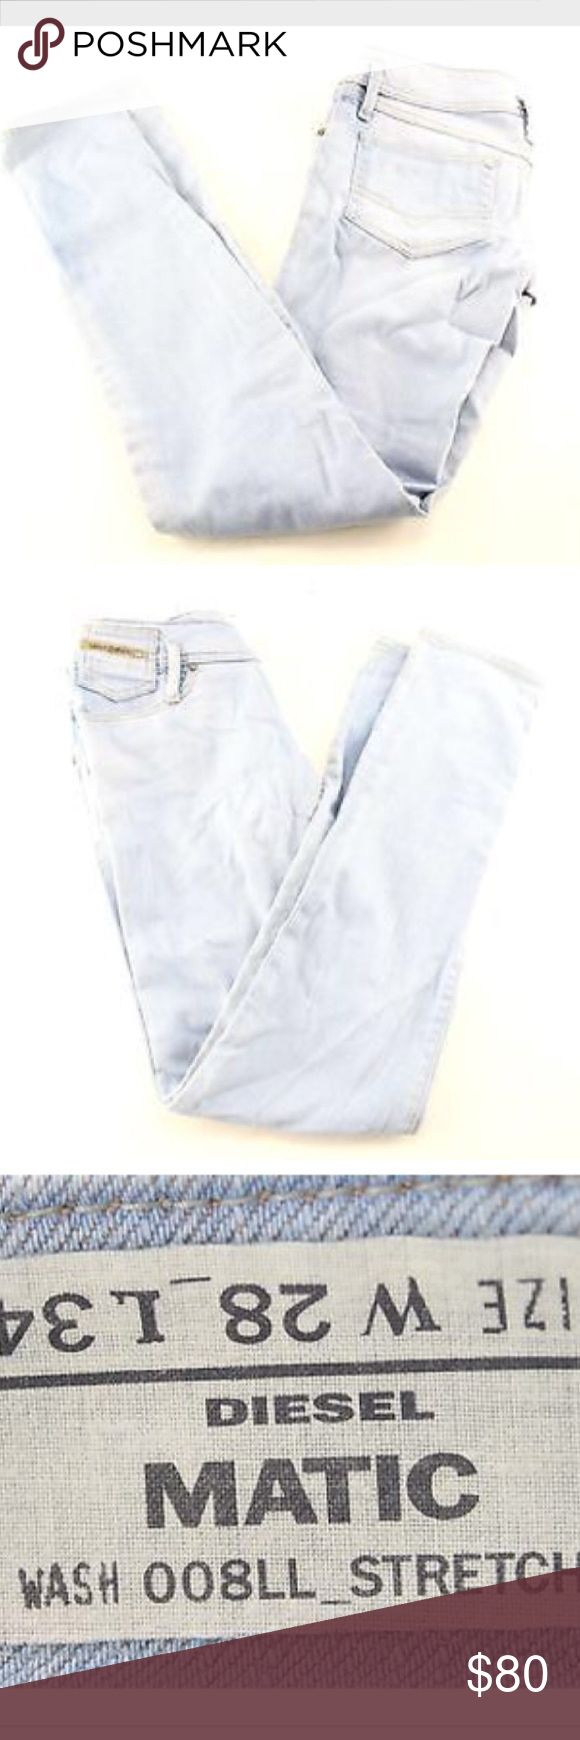 AUTH DIESEL BRAND Matic Light Wash Skinny Jeans 28 AUTH DIESEL BRAND Matic Wash 008LL Stretch Light Blue Skinny Jeans WMNS SZ 28 $260 Diesel Jeans Skinny